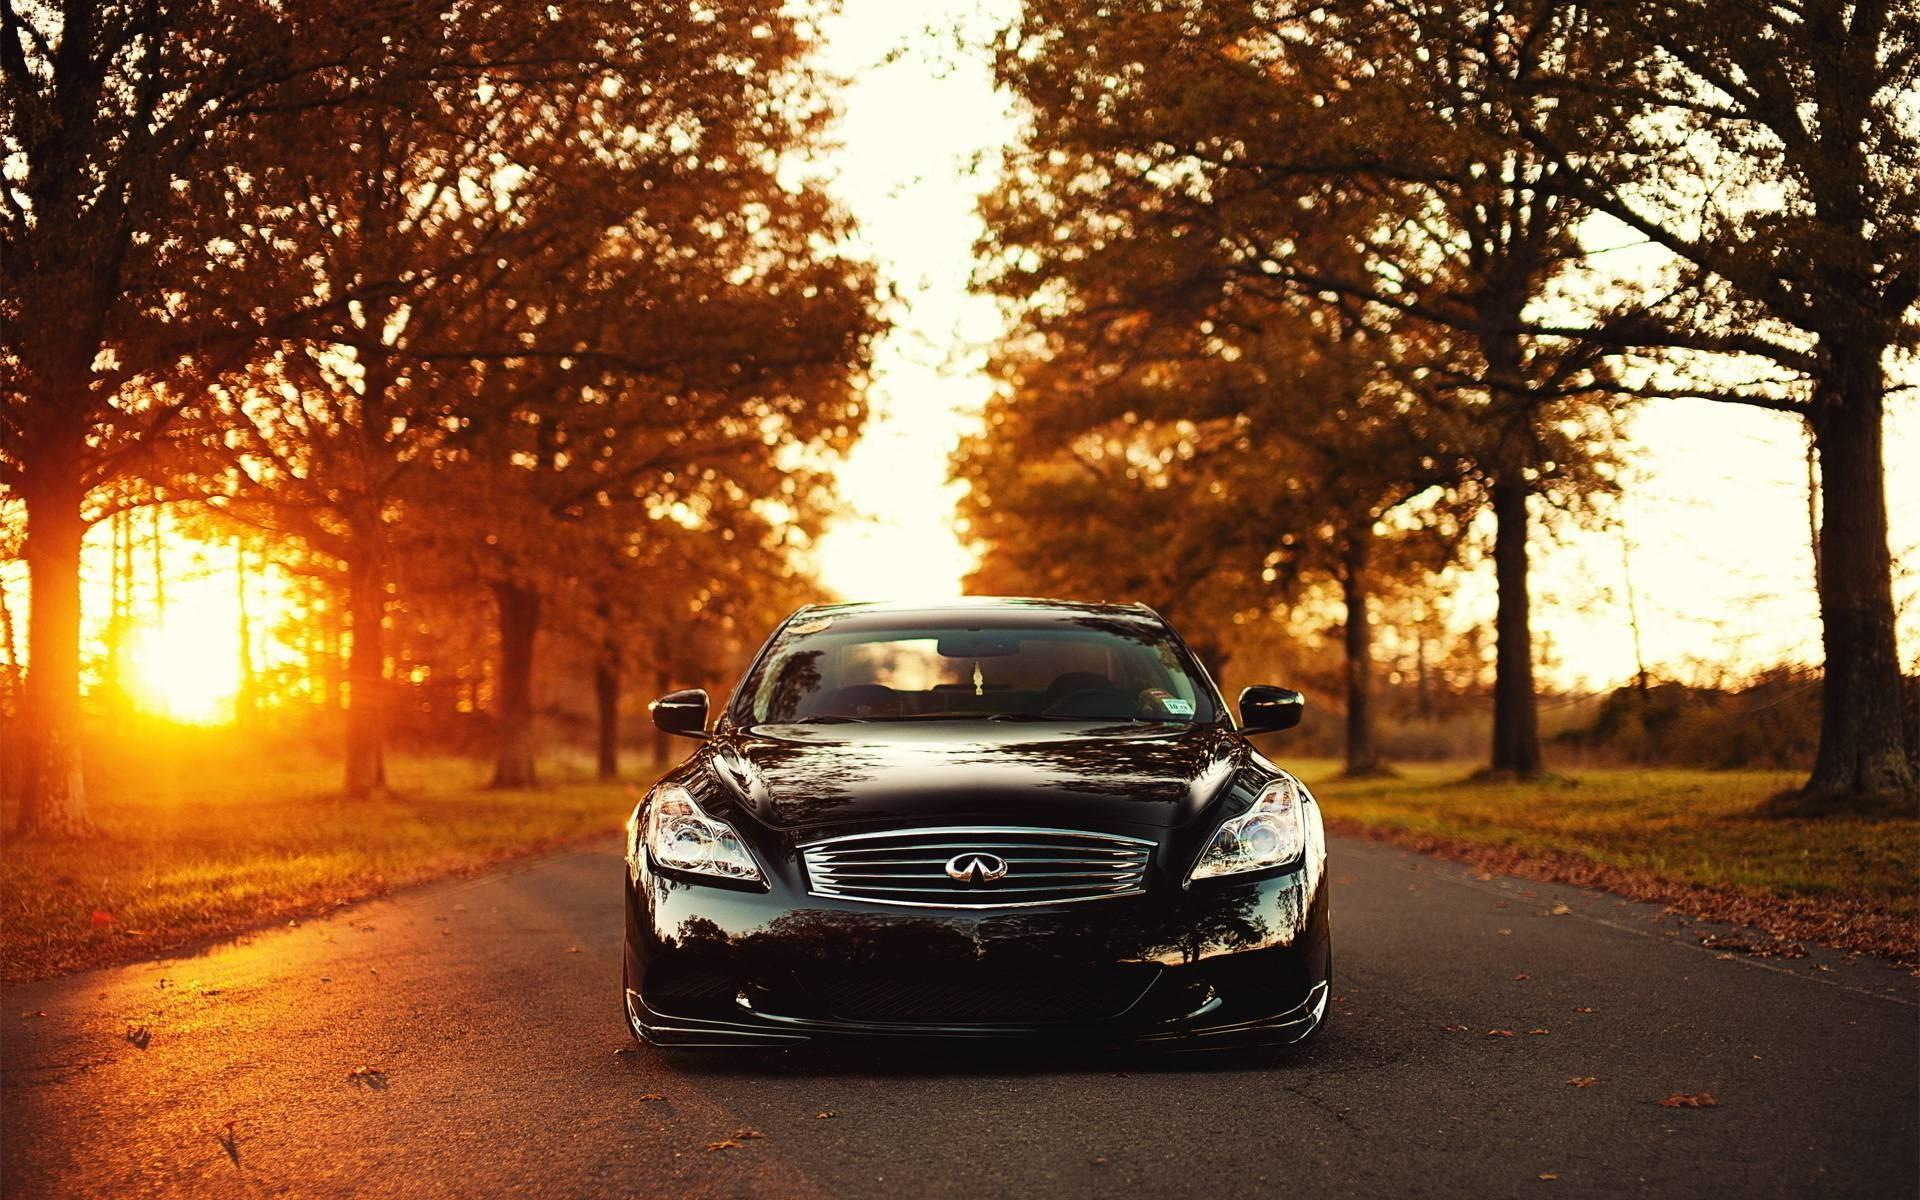 74+ Infiniti G37 Wallpapers on WallpaperPlay